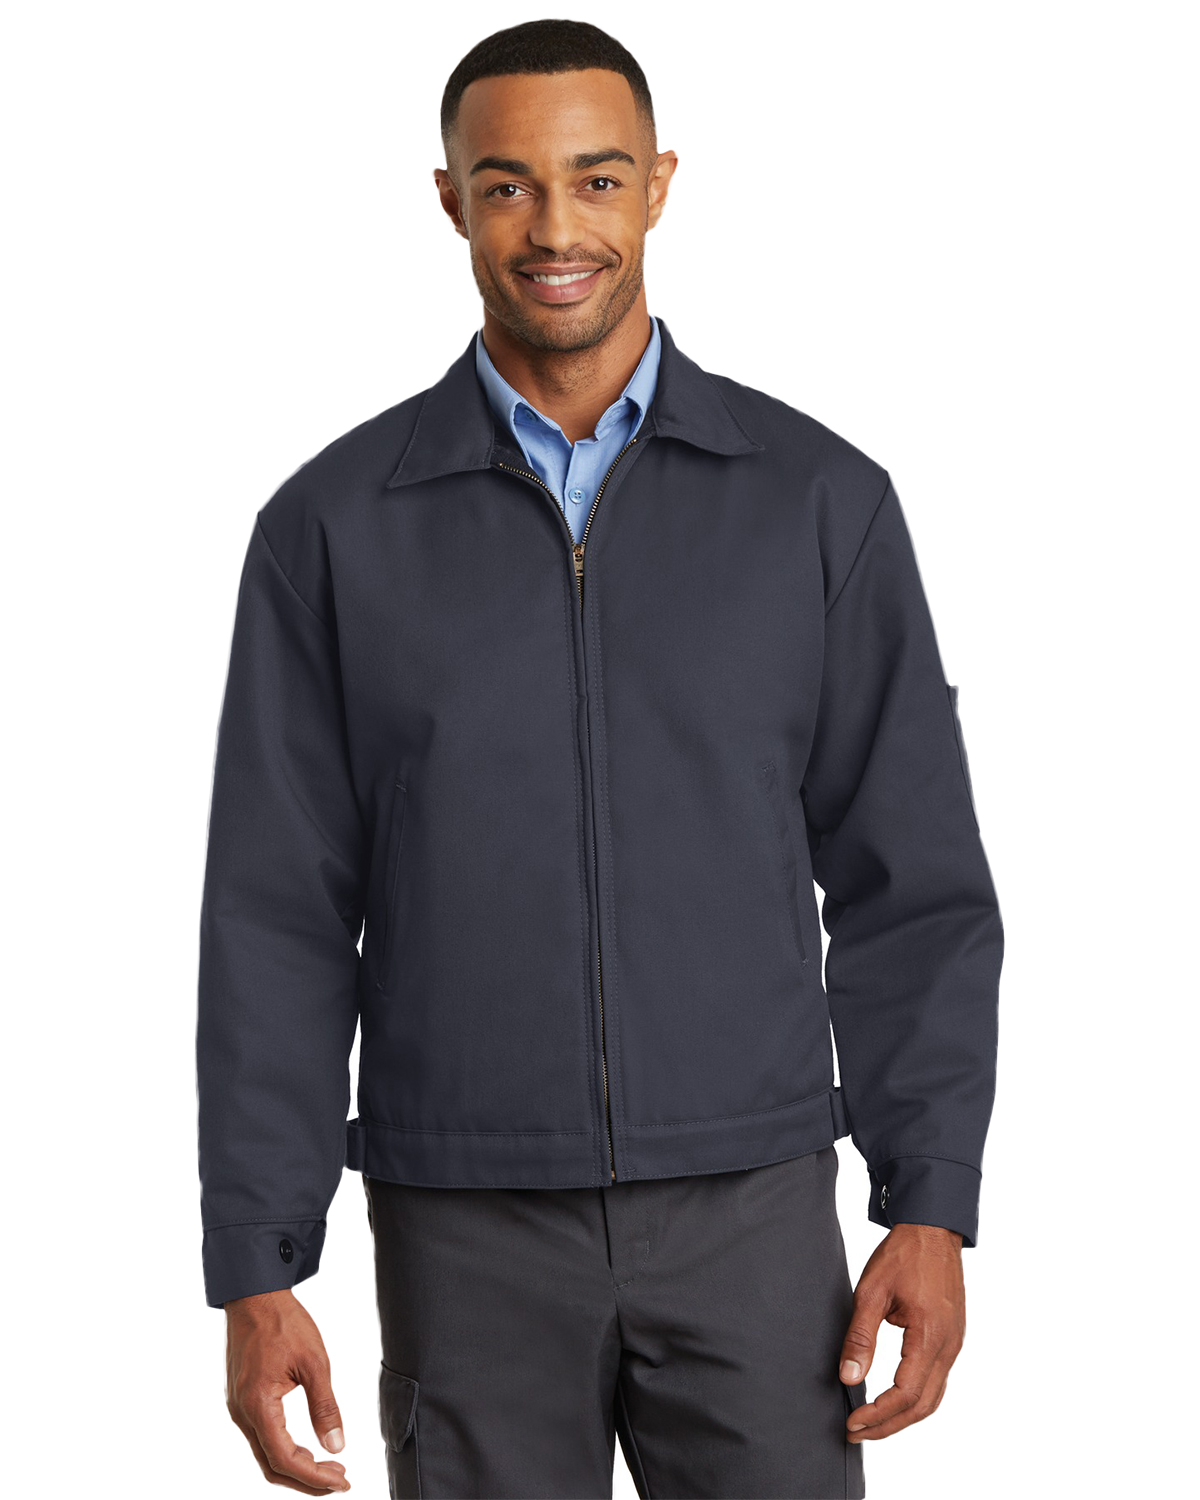 Red Kap CSJT22 Men's Slash Pocket Jacket at GotApparel